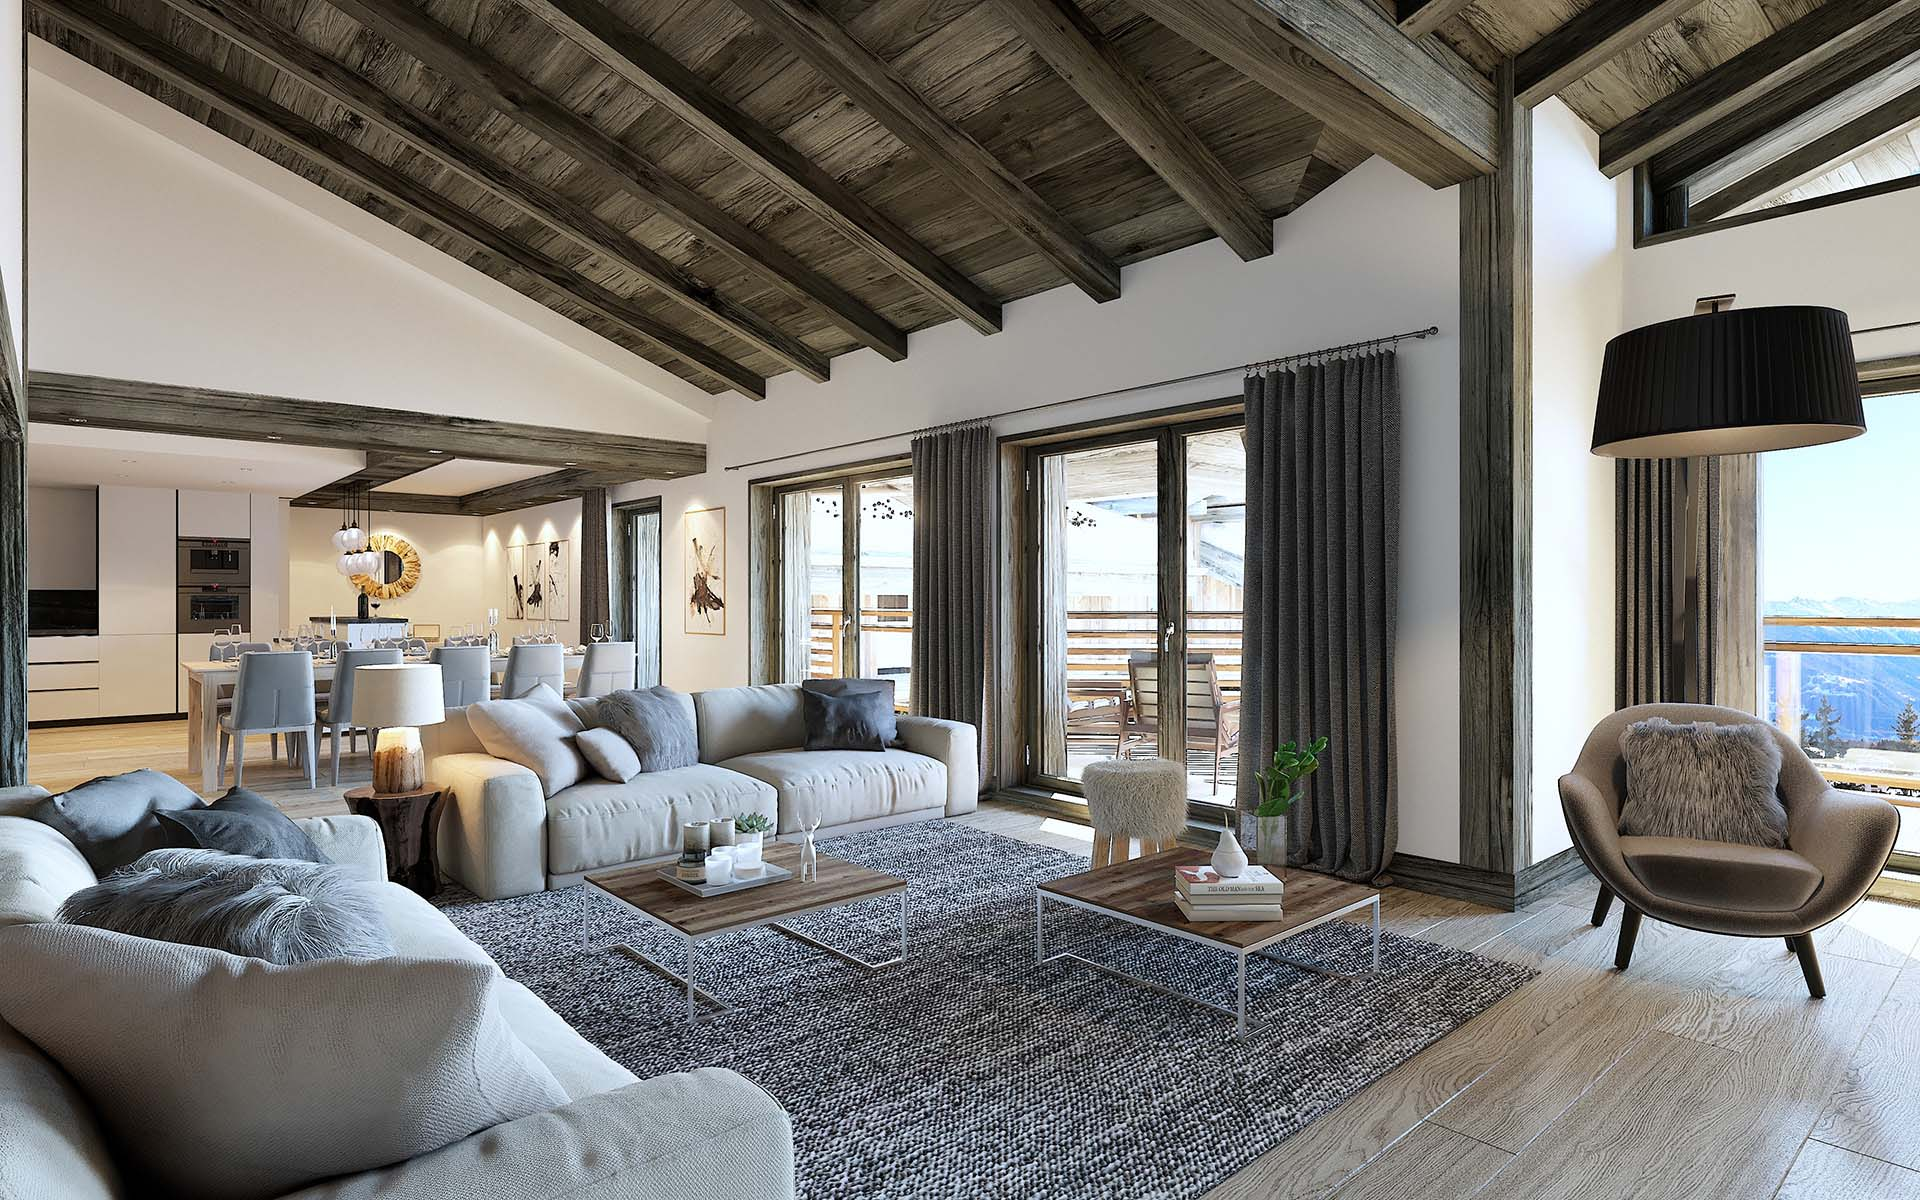 3 dimensional view of a luxurious apartment created by a qualified 3D studio.